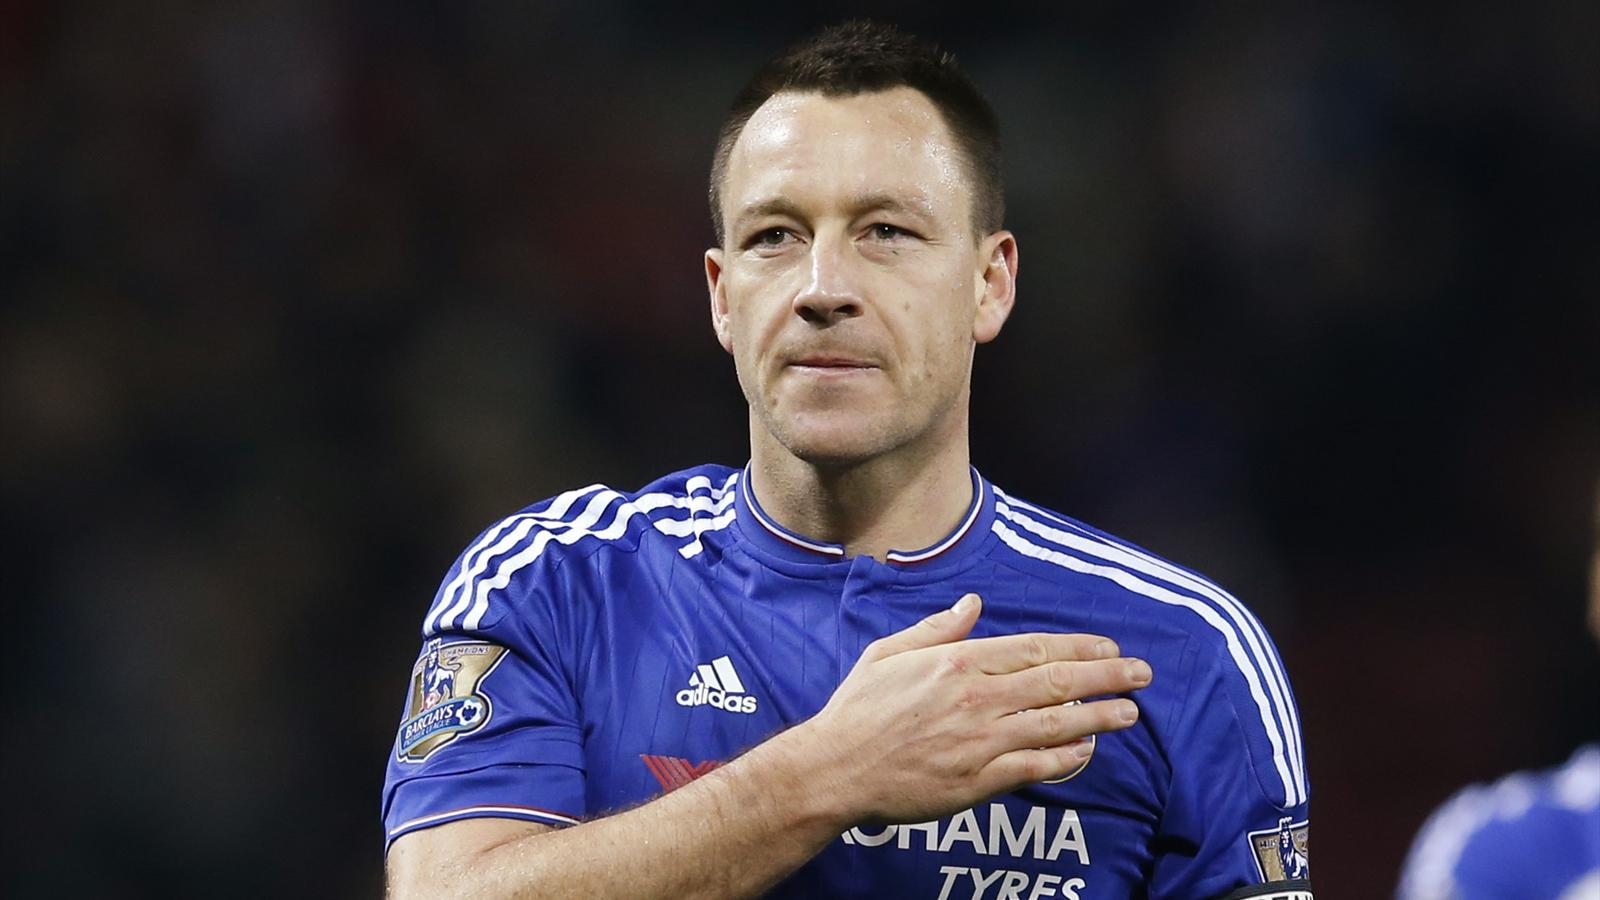 Who will succeed John Terry as Chelsea captain Premier League